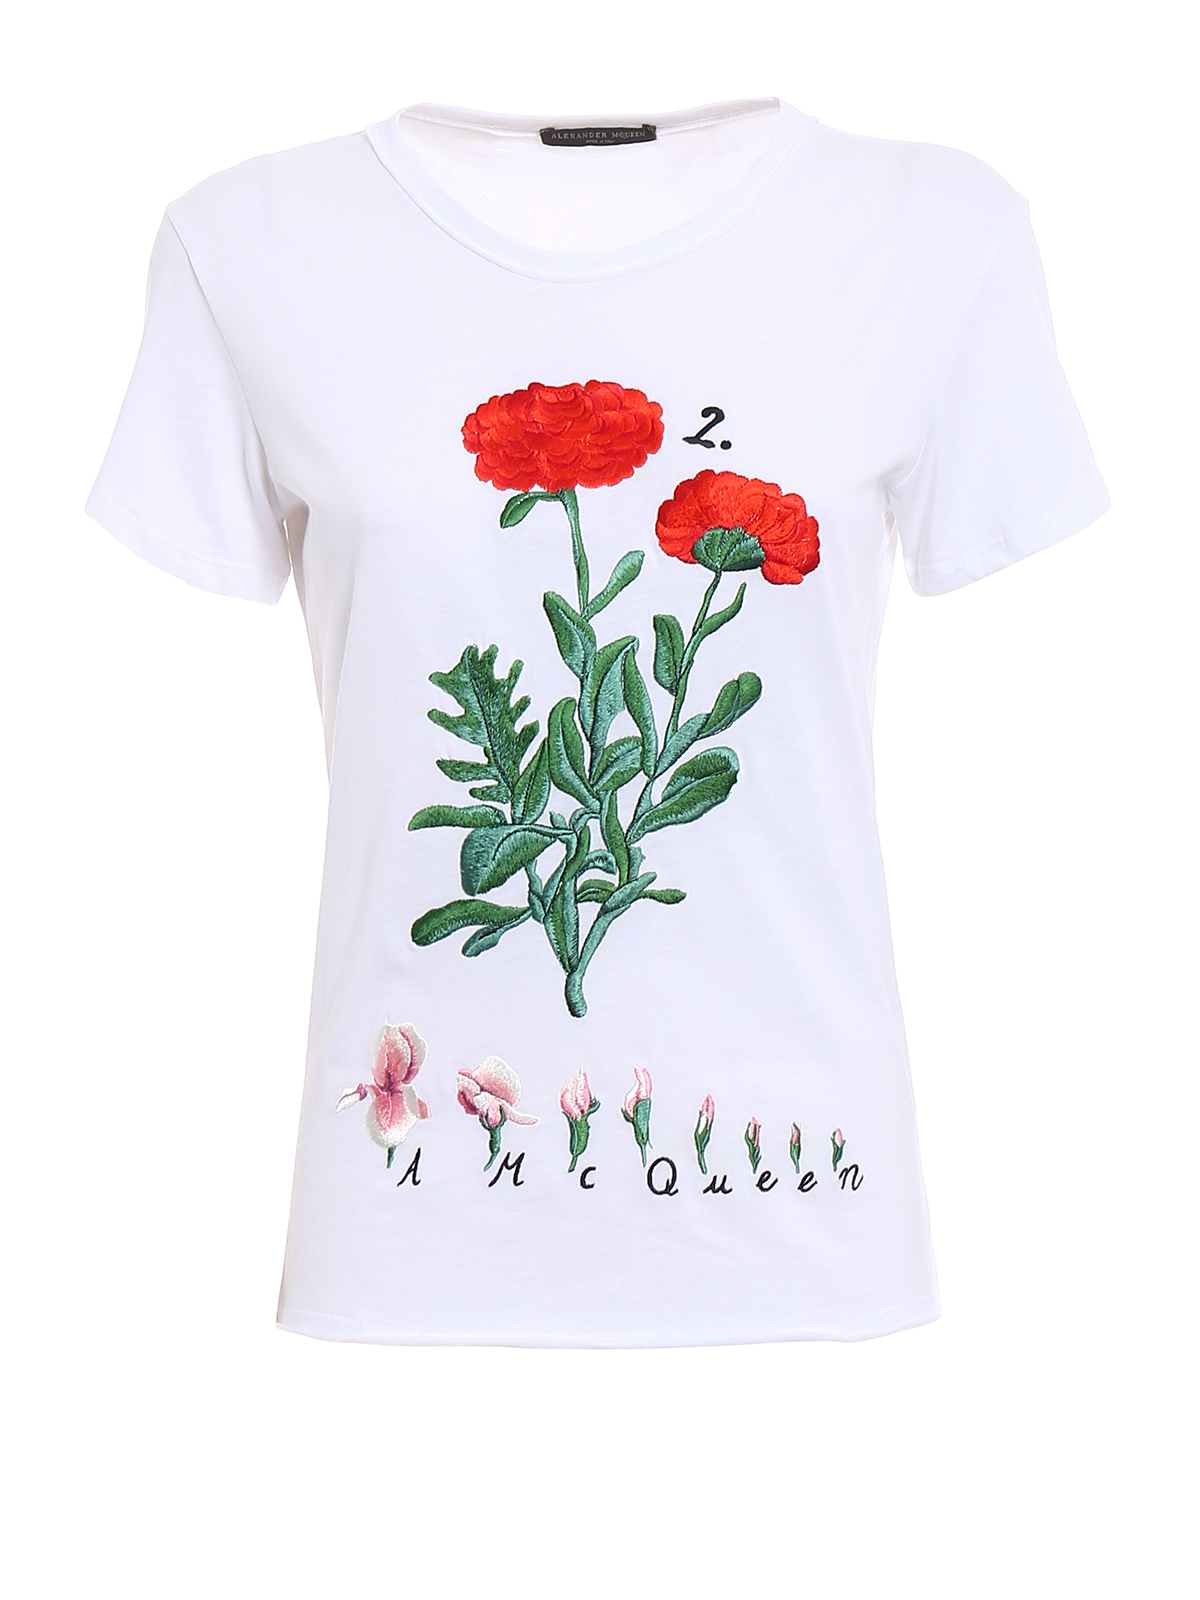 Cotton embroidered t shirt by alexander mcqueen shirts